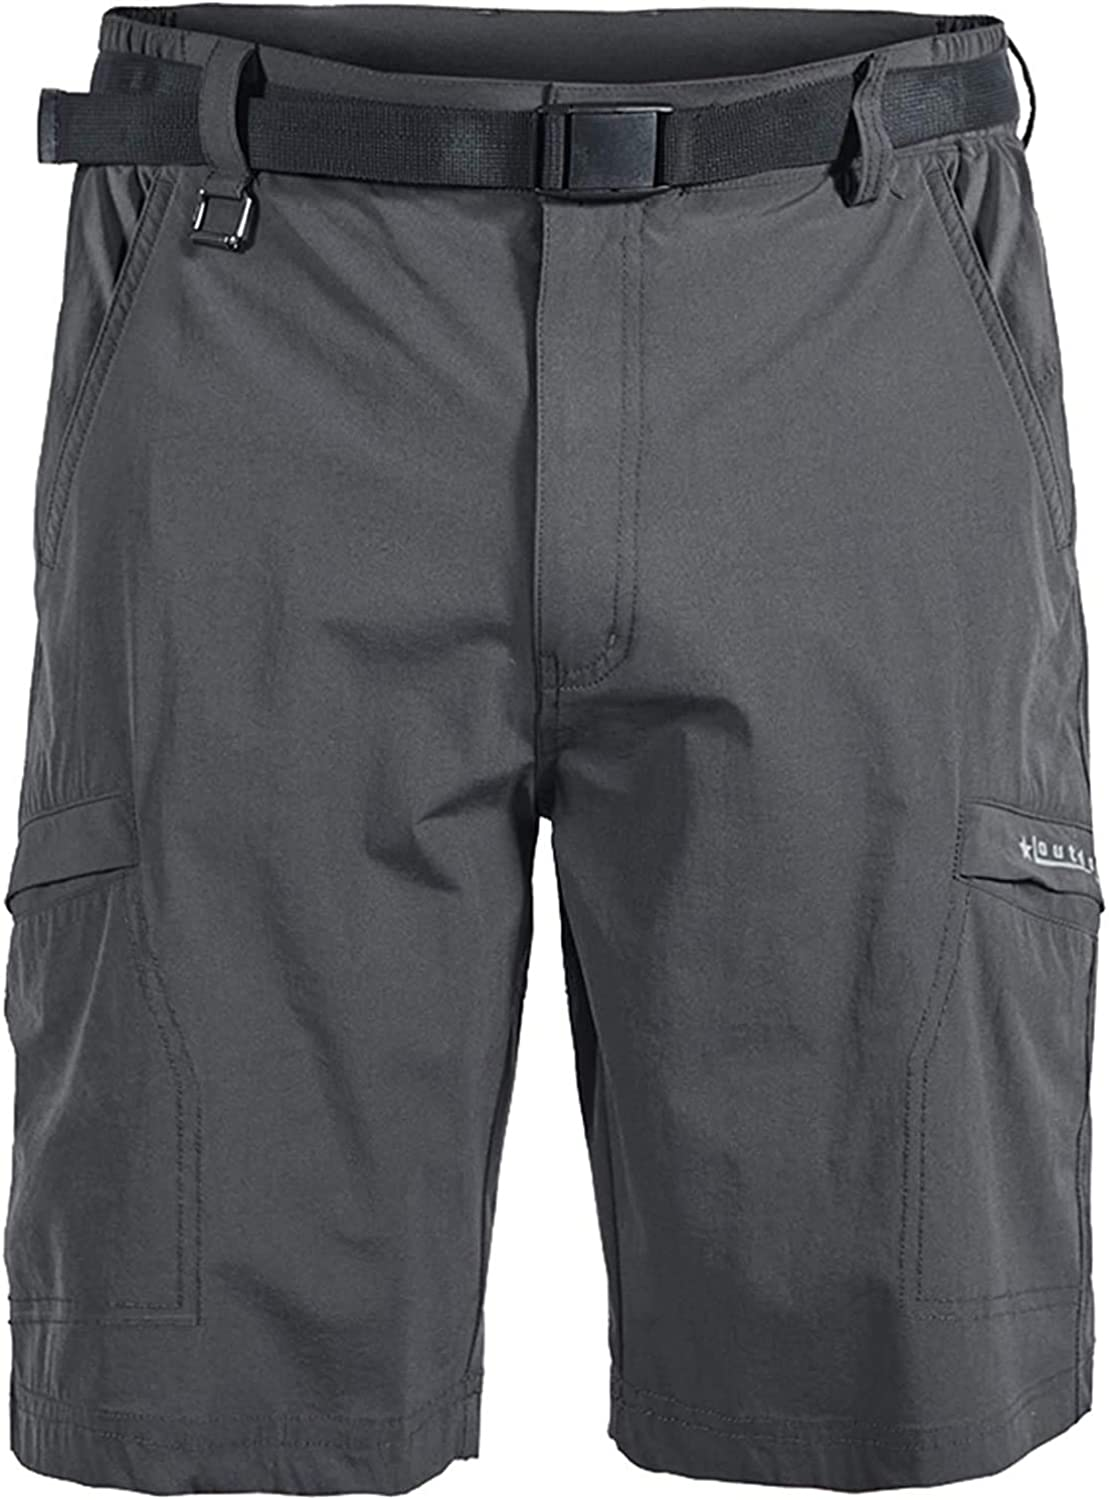 Mens Outdoor Casual Lightweight Water Resistant Quick Dry Cargo Hiking Shorts Water Resistant NO Belt